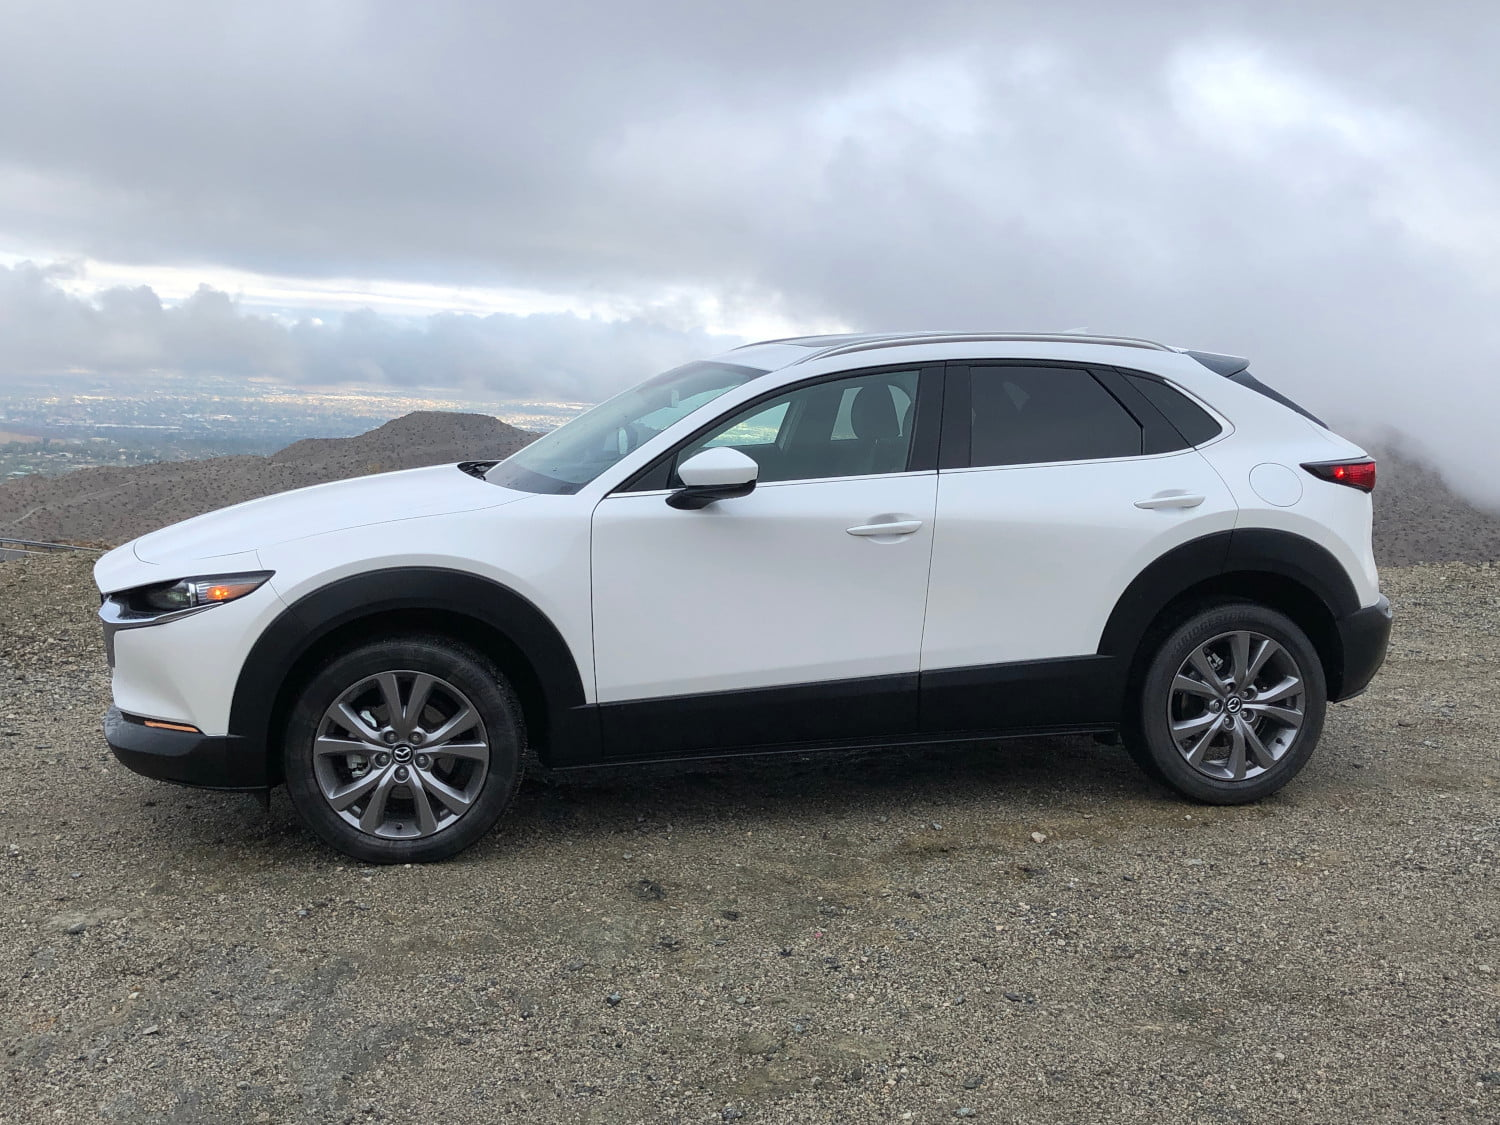 2020 Mazda CX-30 first drive review: Right-sized